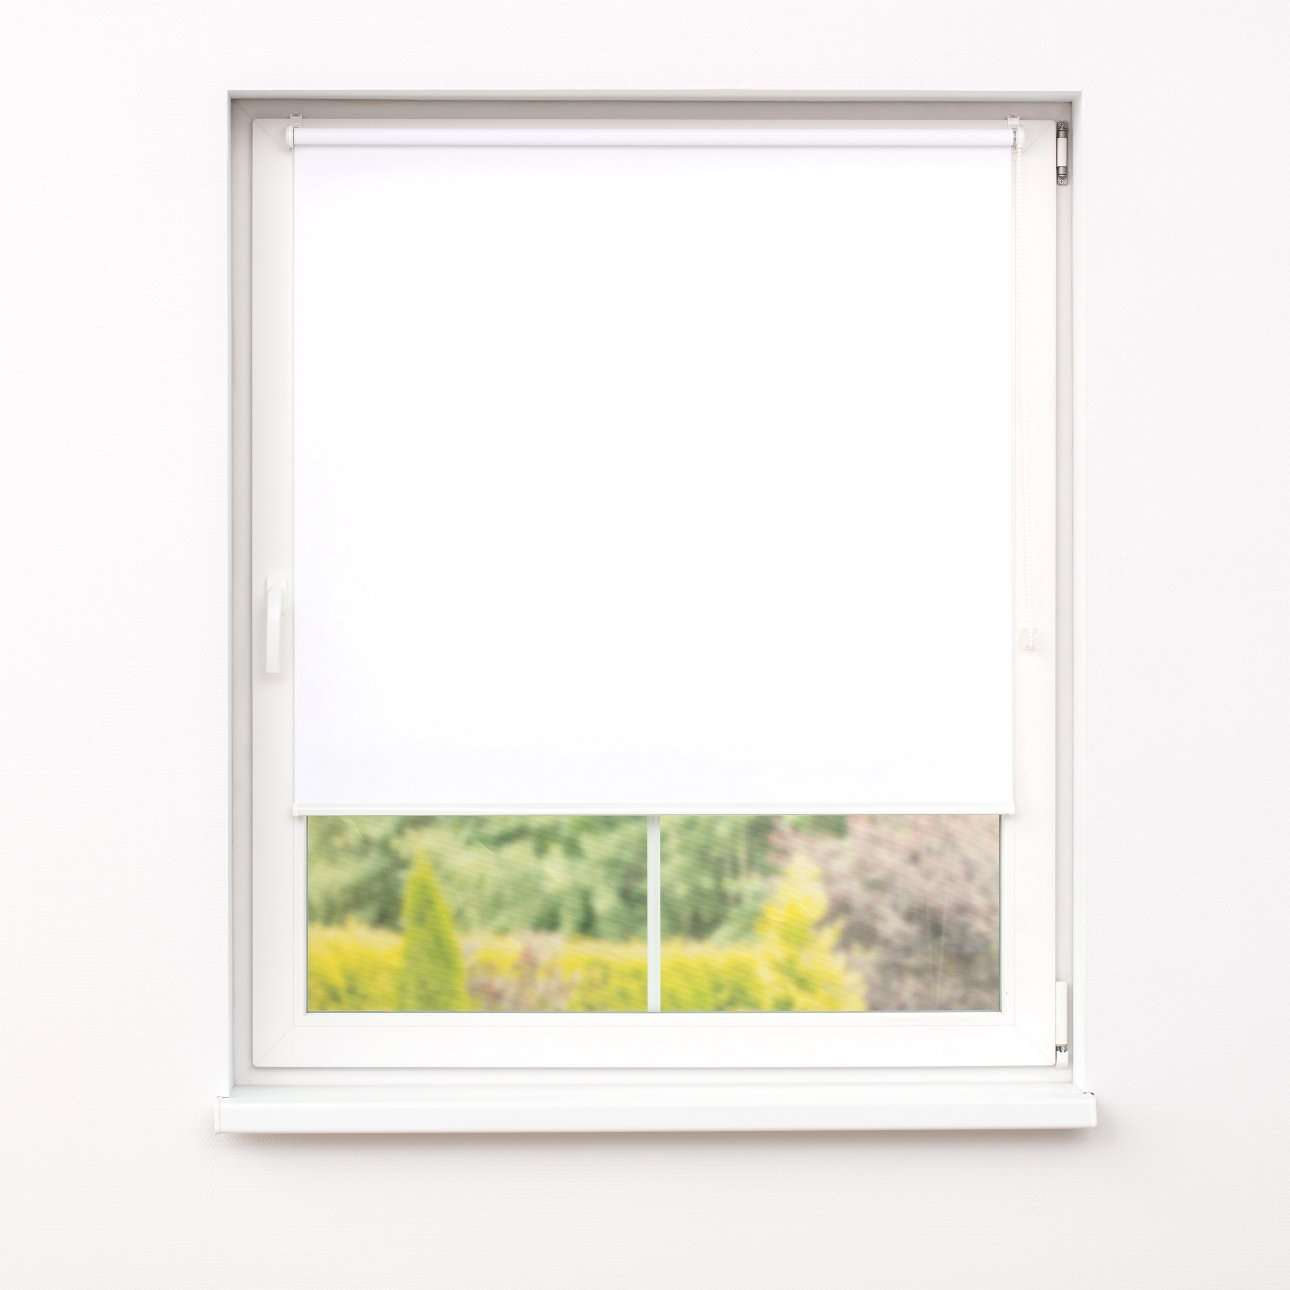 Mini blackout roller blind in collection Roller blind blackout, fabric: 051